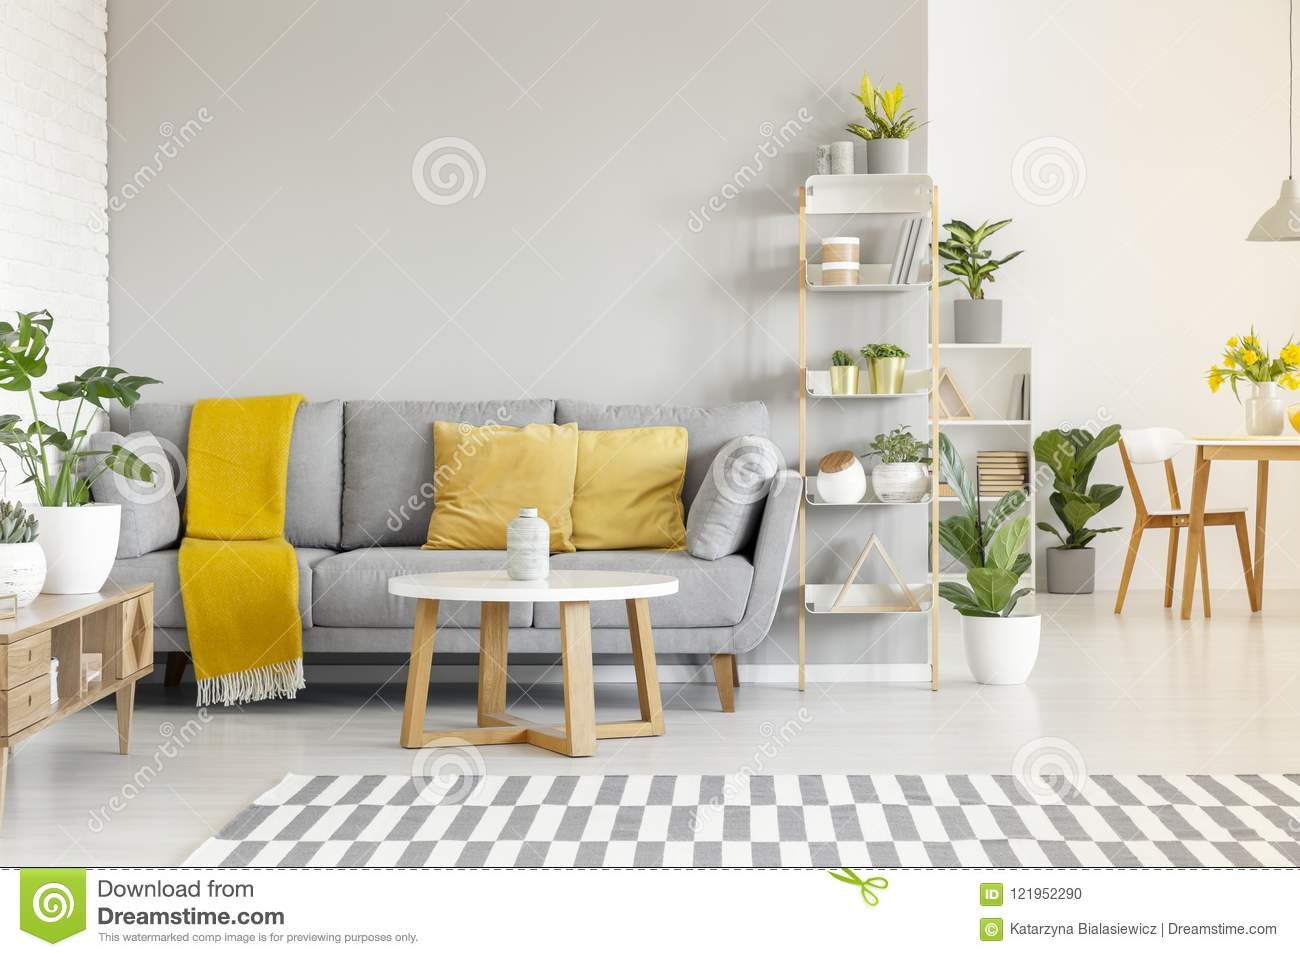 Yellow Pillows And Blanket On Grey Sofa In Modern Living Room In